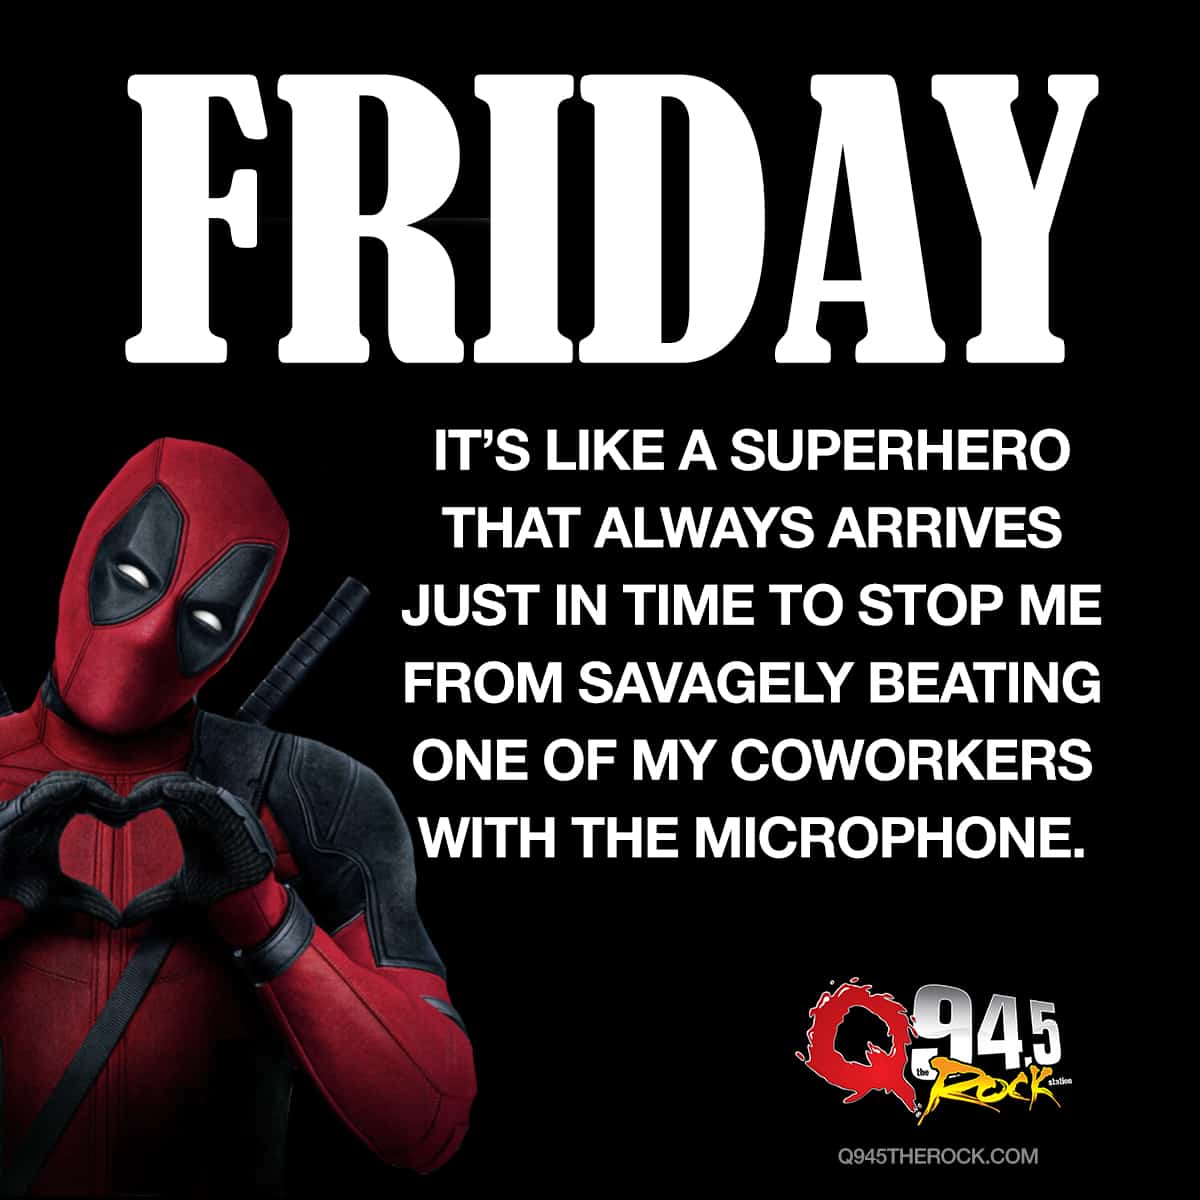 Friday.  It's like a superhero that always arrives just in time to stop me from savagely beating one of my coworkers with the microphone.